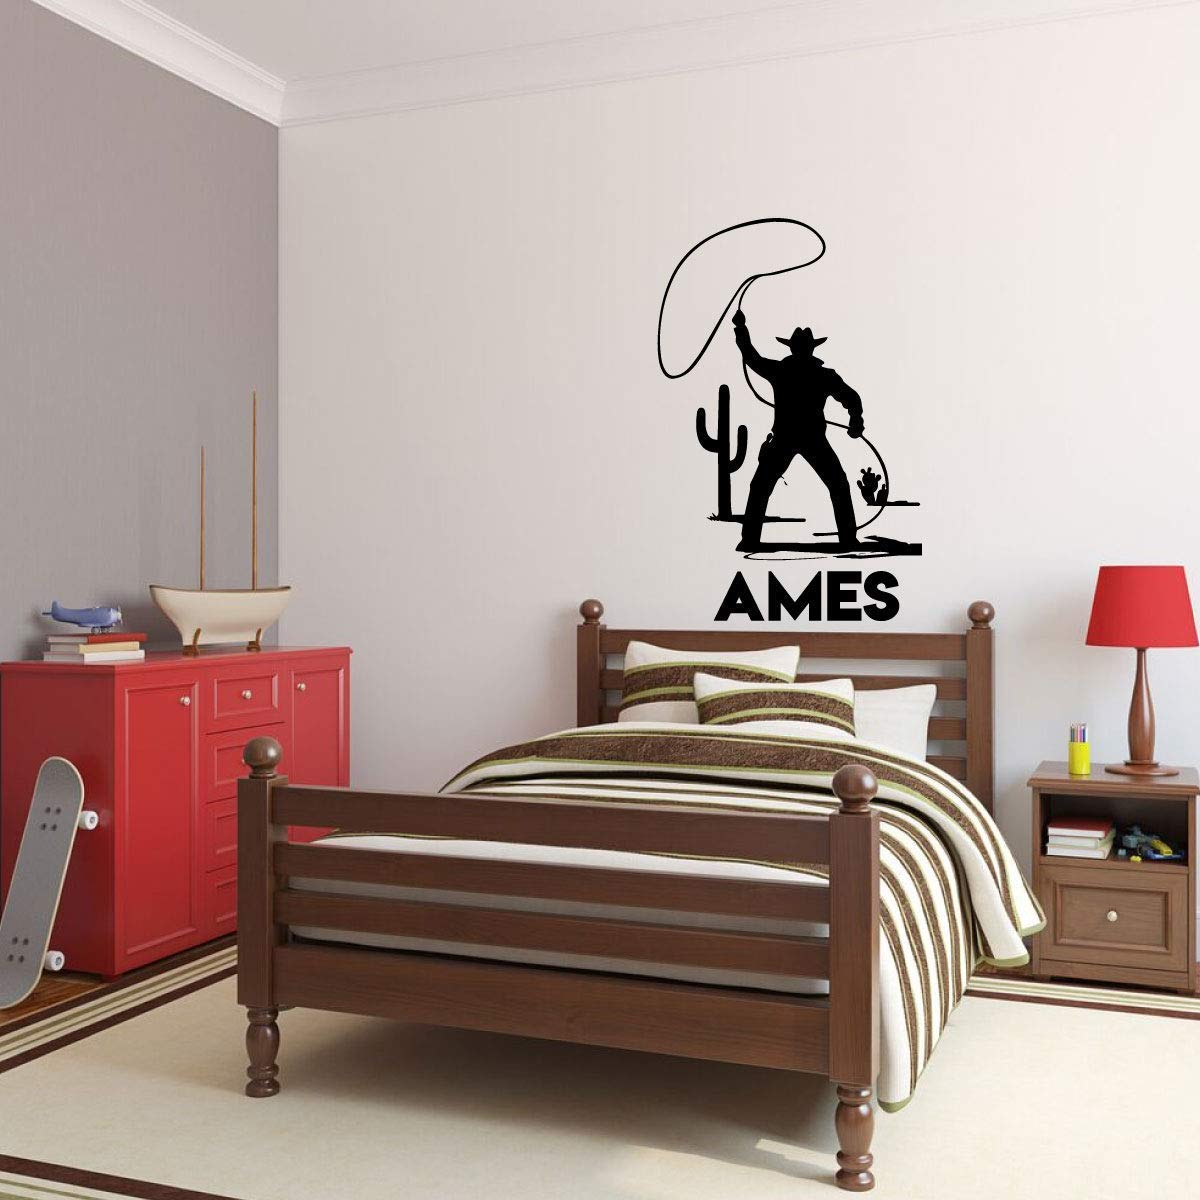 Wall Decal ames Wall Sticker Self Adhesive Vinyl Waterproof Wall Art Decal Nursery Room Decor Removable Decor Wall Decals